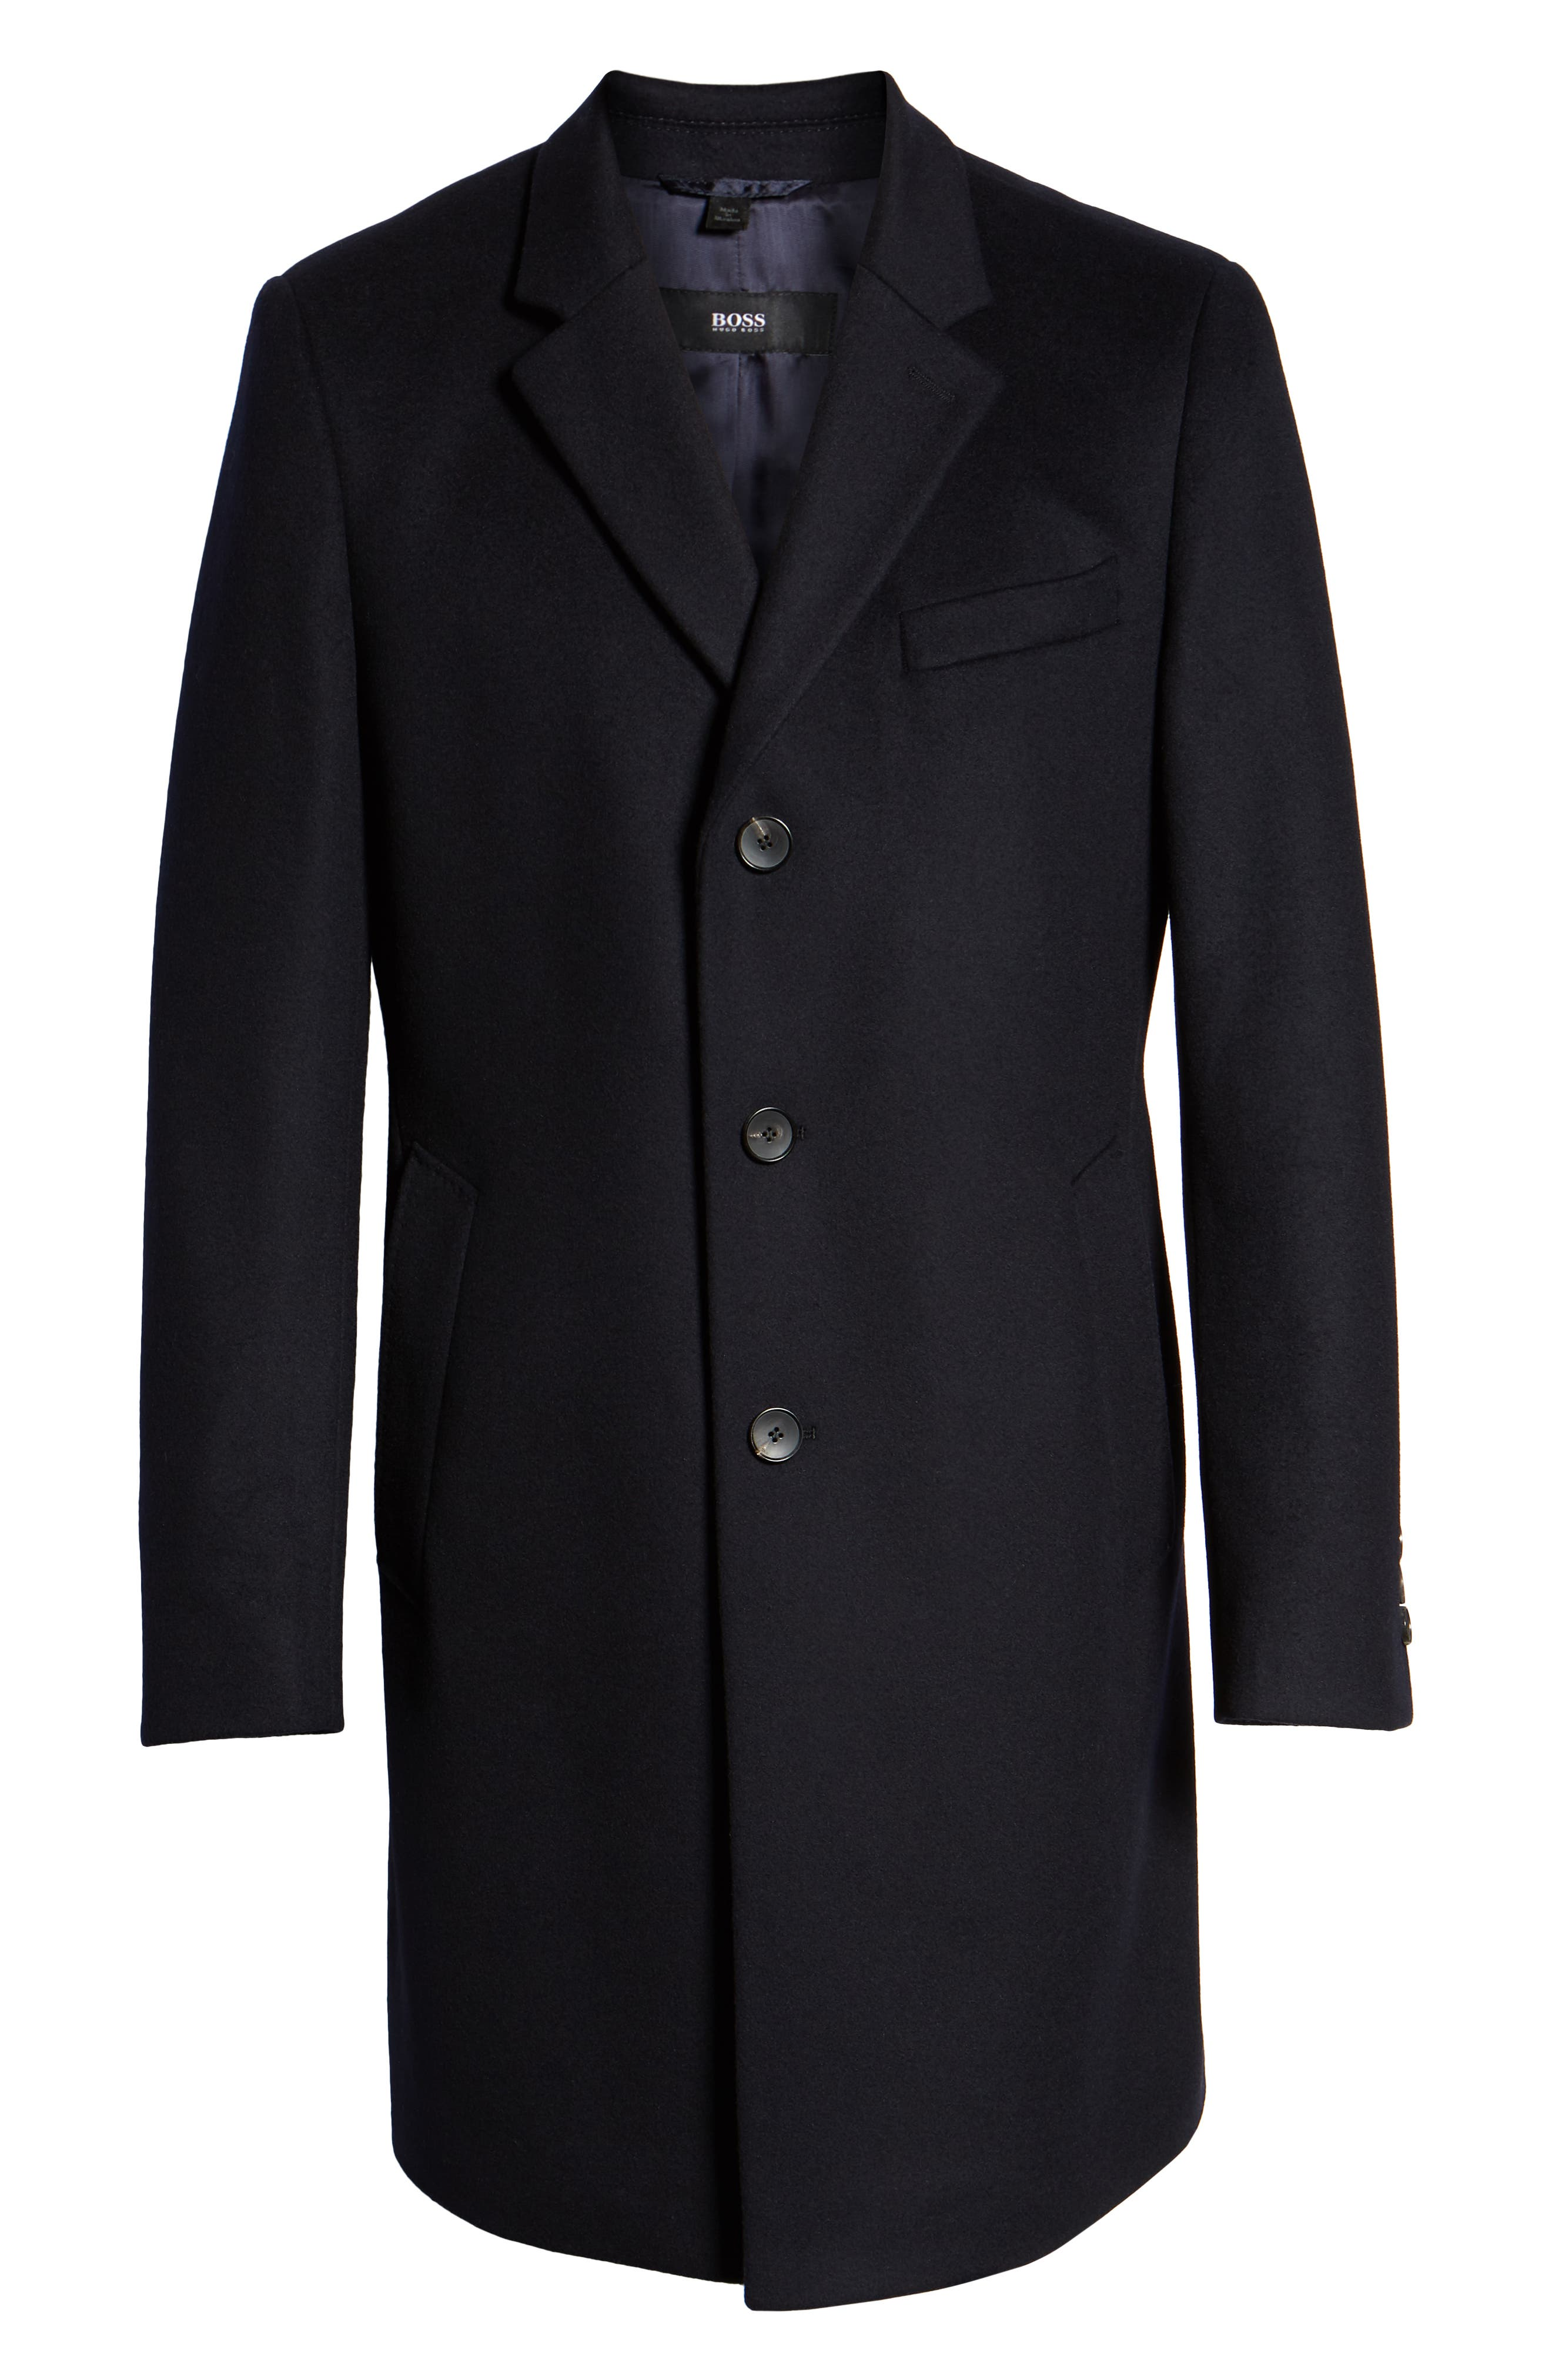 BOSS,                             Nye Regular Fit Solid Wool & Cashmere Topcoat,                             Alternate thumbnail 6, color,                             DARK BLUE